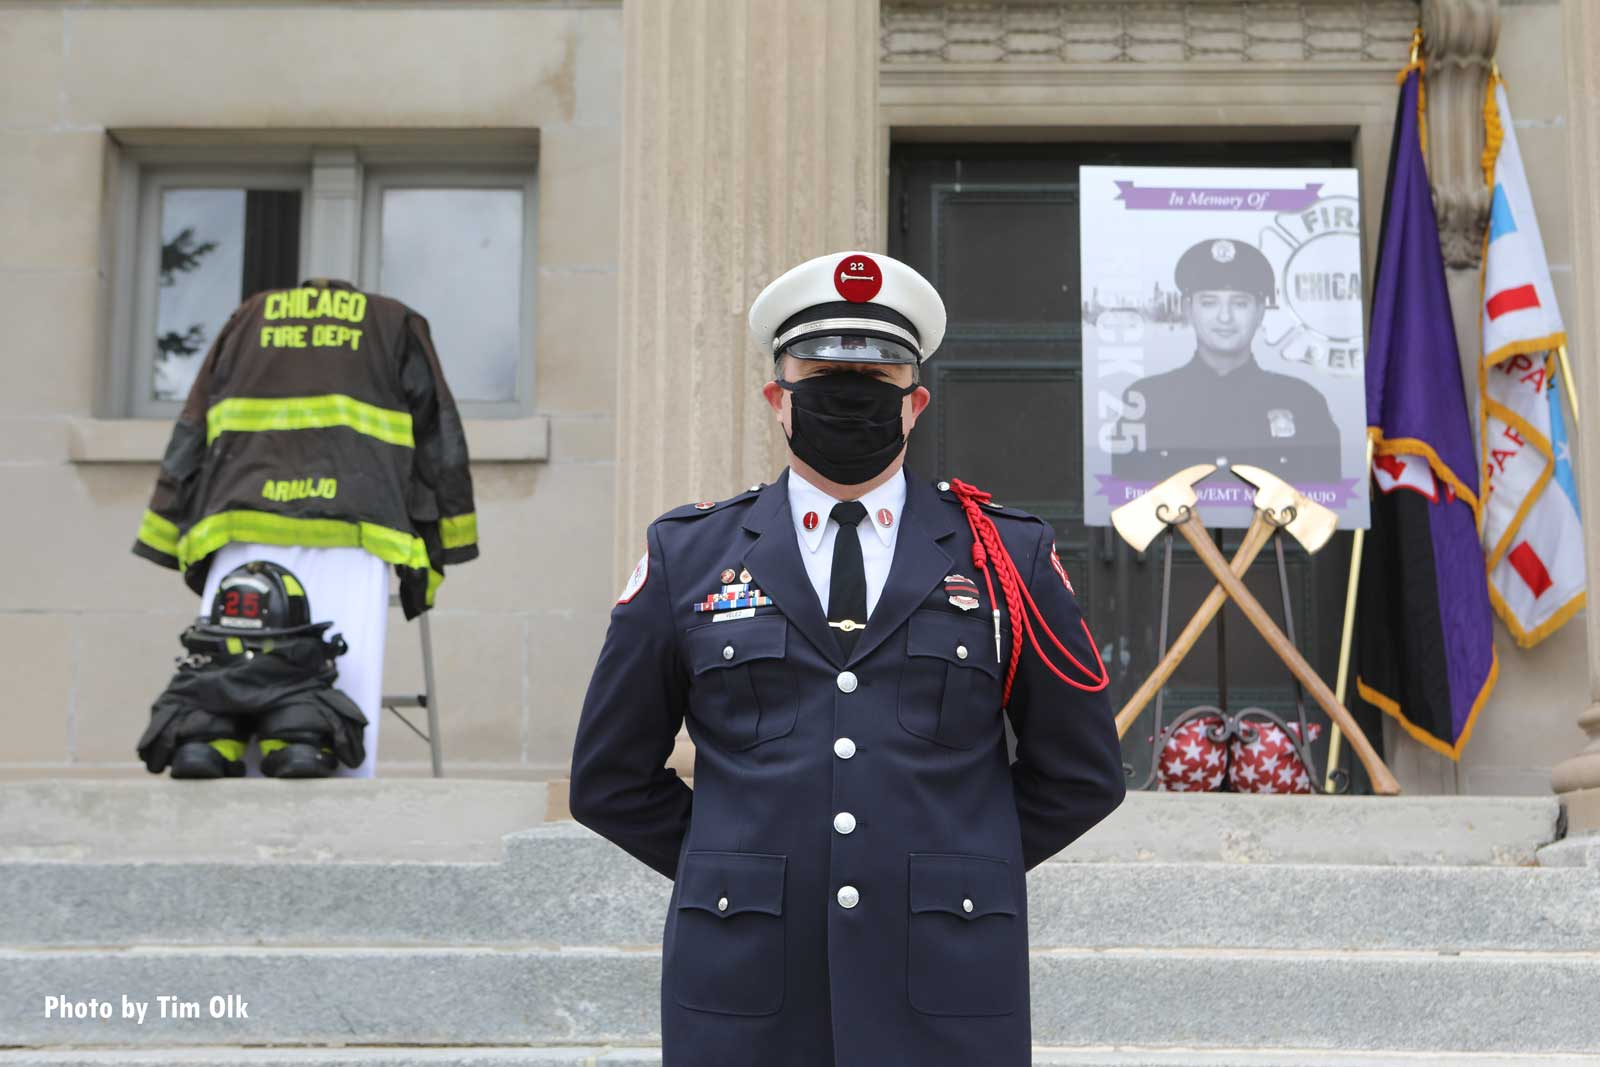 A photo of Araujo, ceremonial axs, and his turnout gear